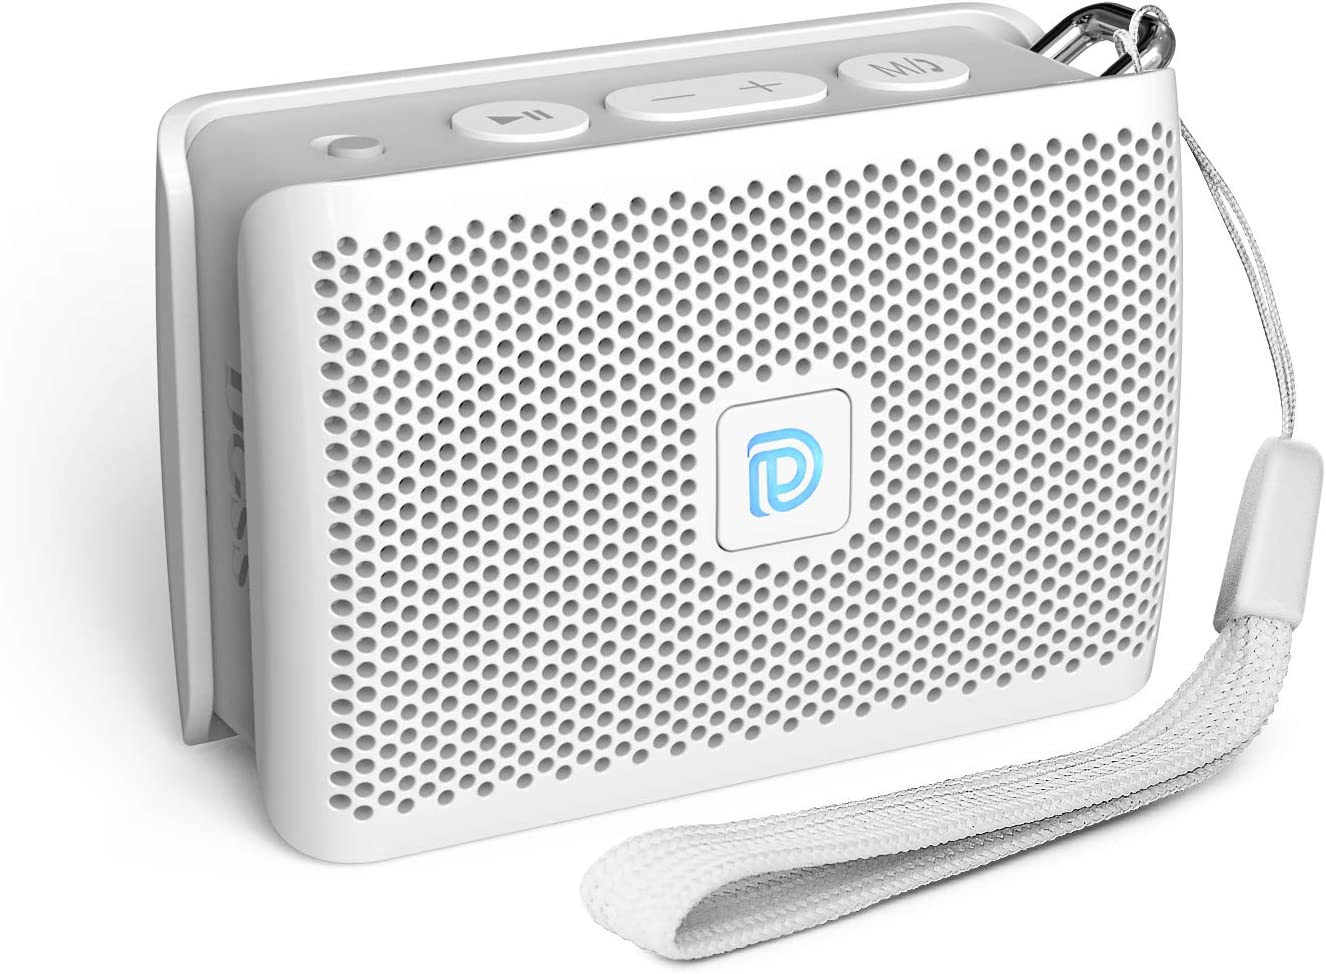 DOSS Genie Portable Bluetooth Speaker with Clean Sound, 33ft Bluetooth Range, Built-in Mic, Ultra-Portable Design, Wireless Speaker Compatible for Home, Outdoors, Travel - White